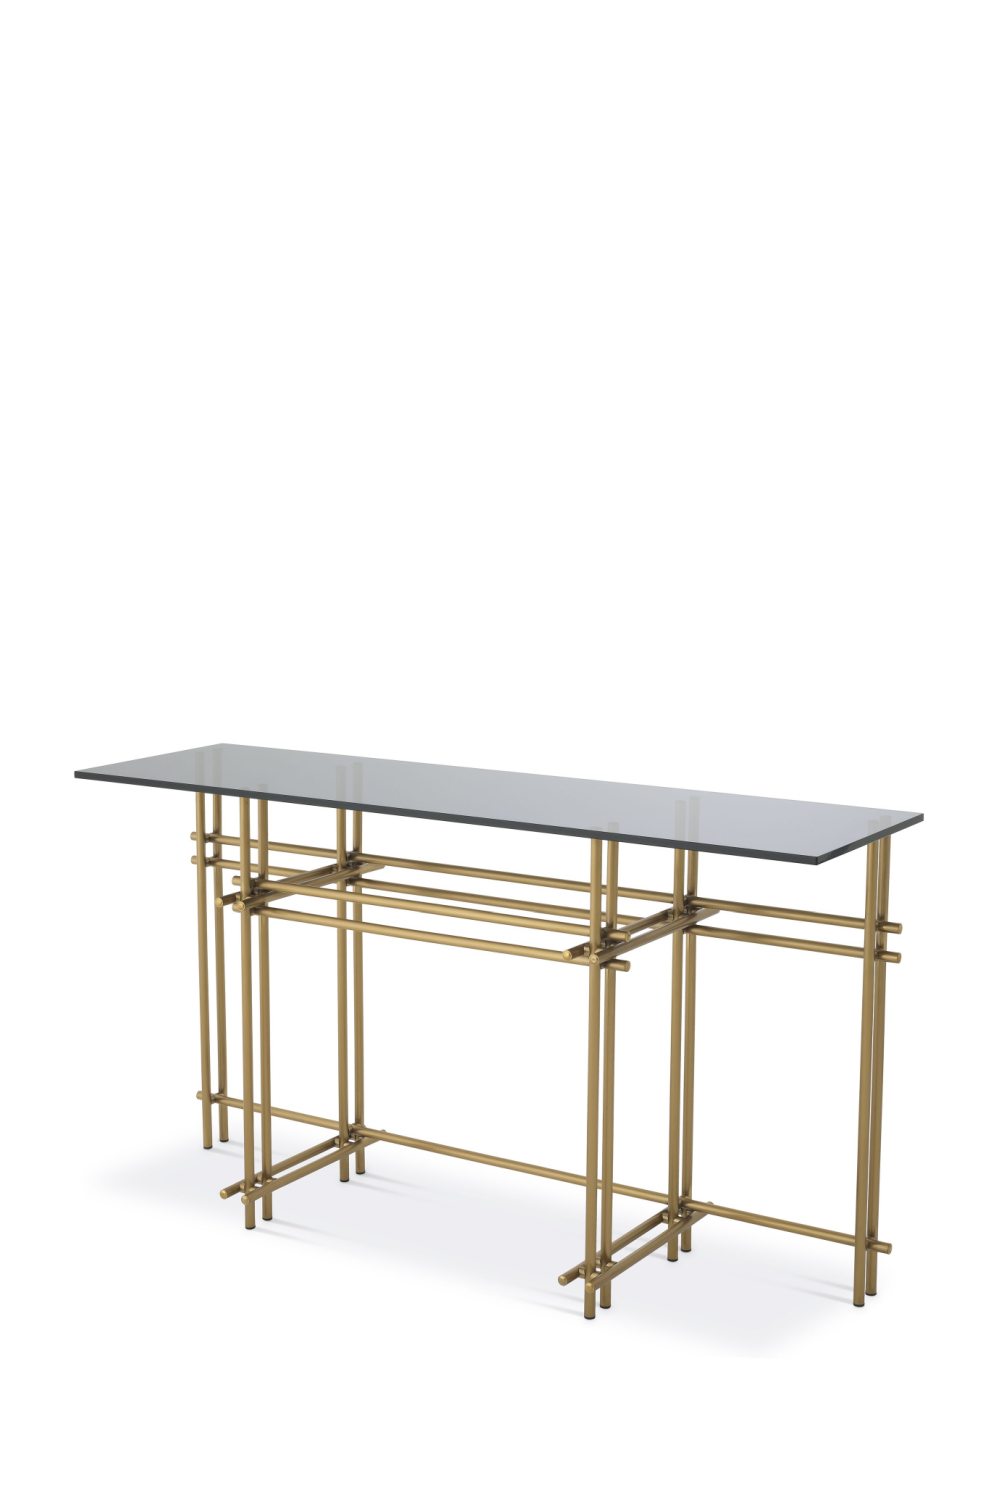 Smoked Glass Brass Console Table | Eichholtz | #1 Eichholtz Retailer